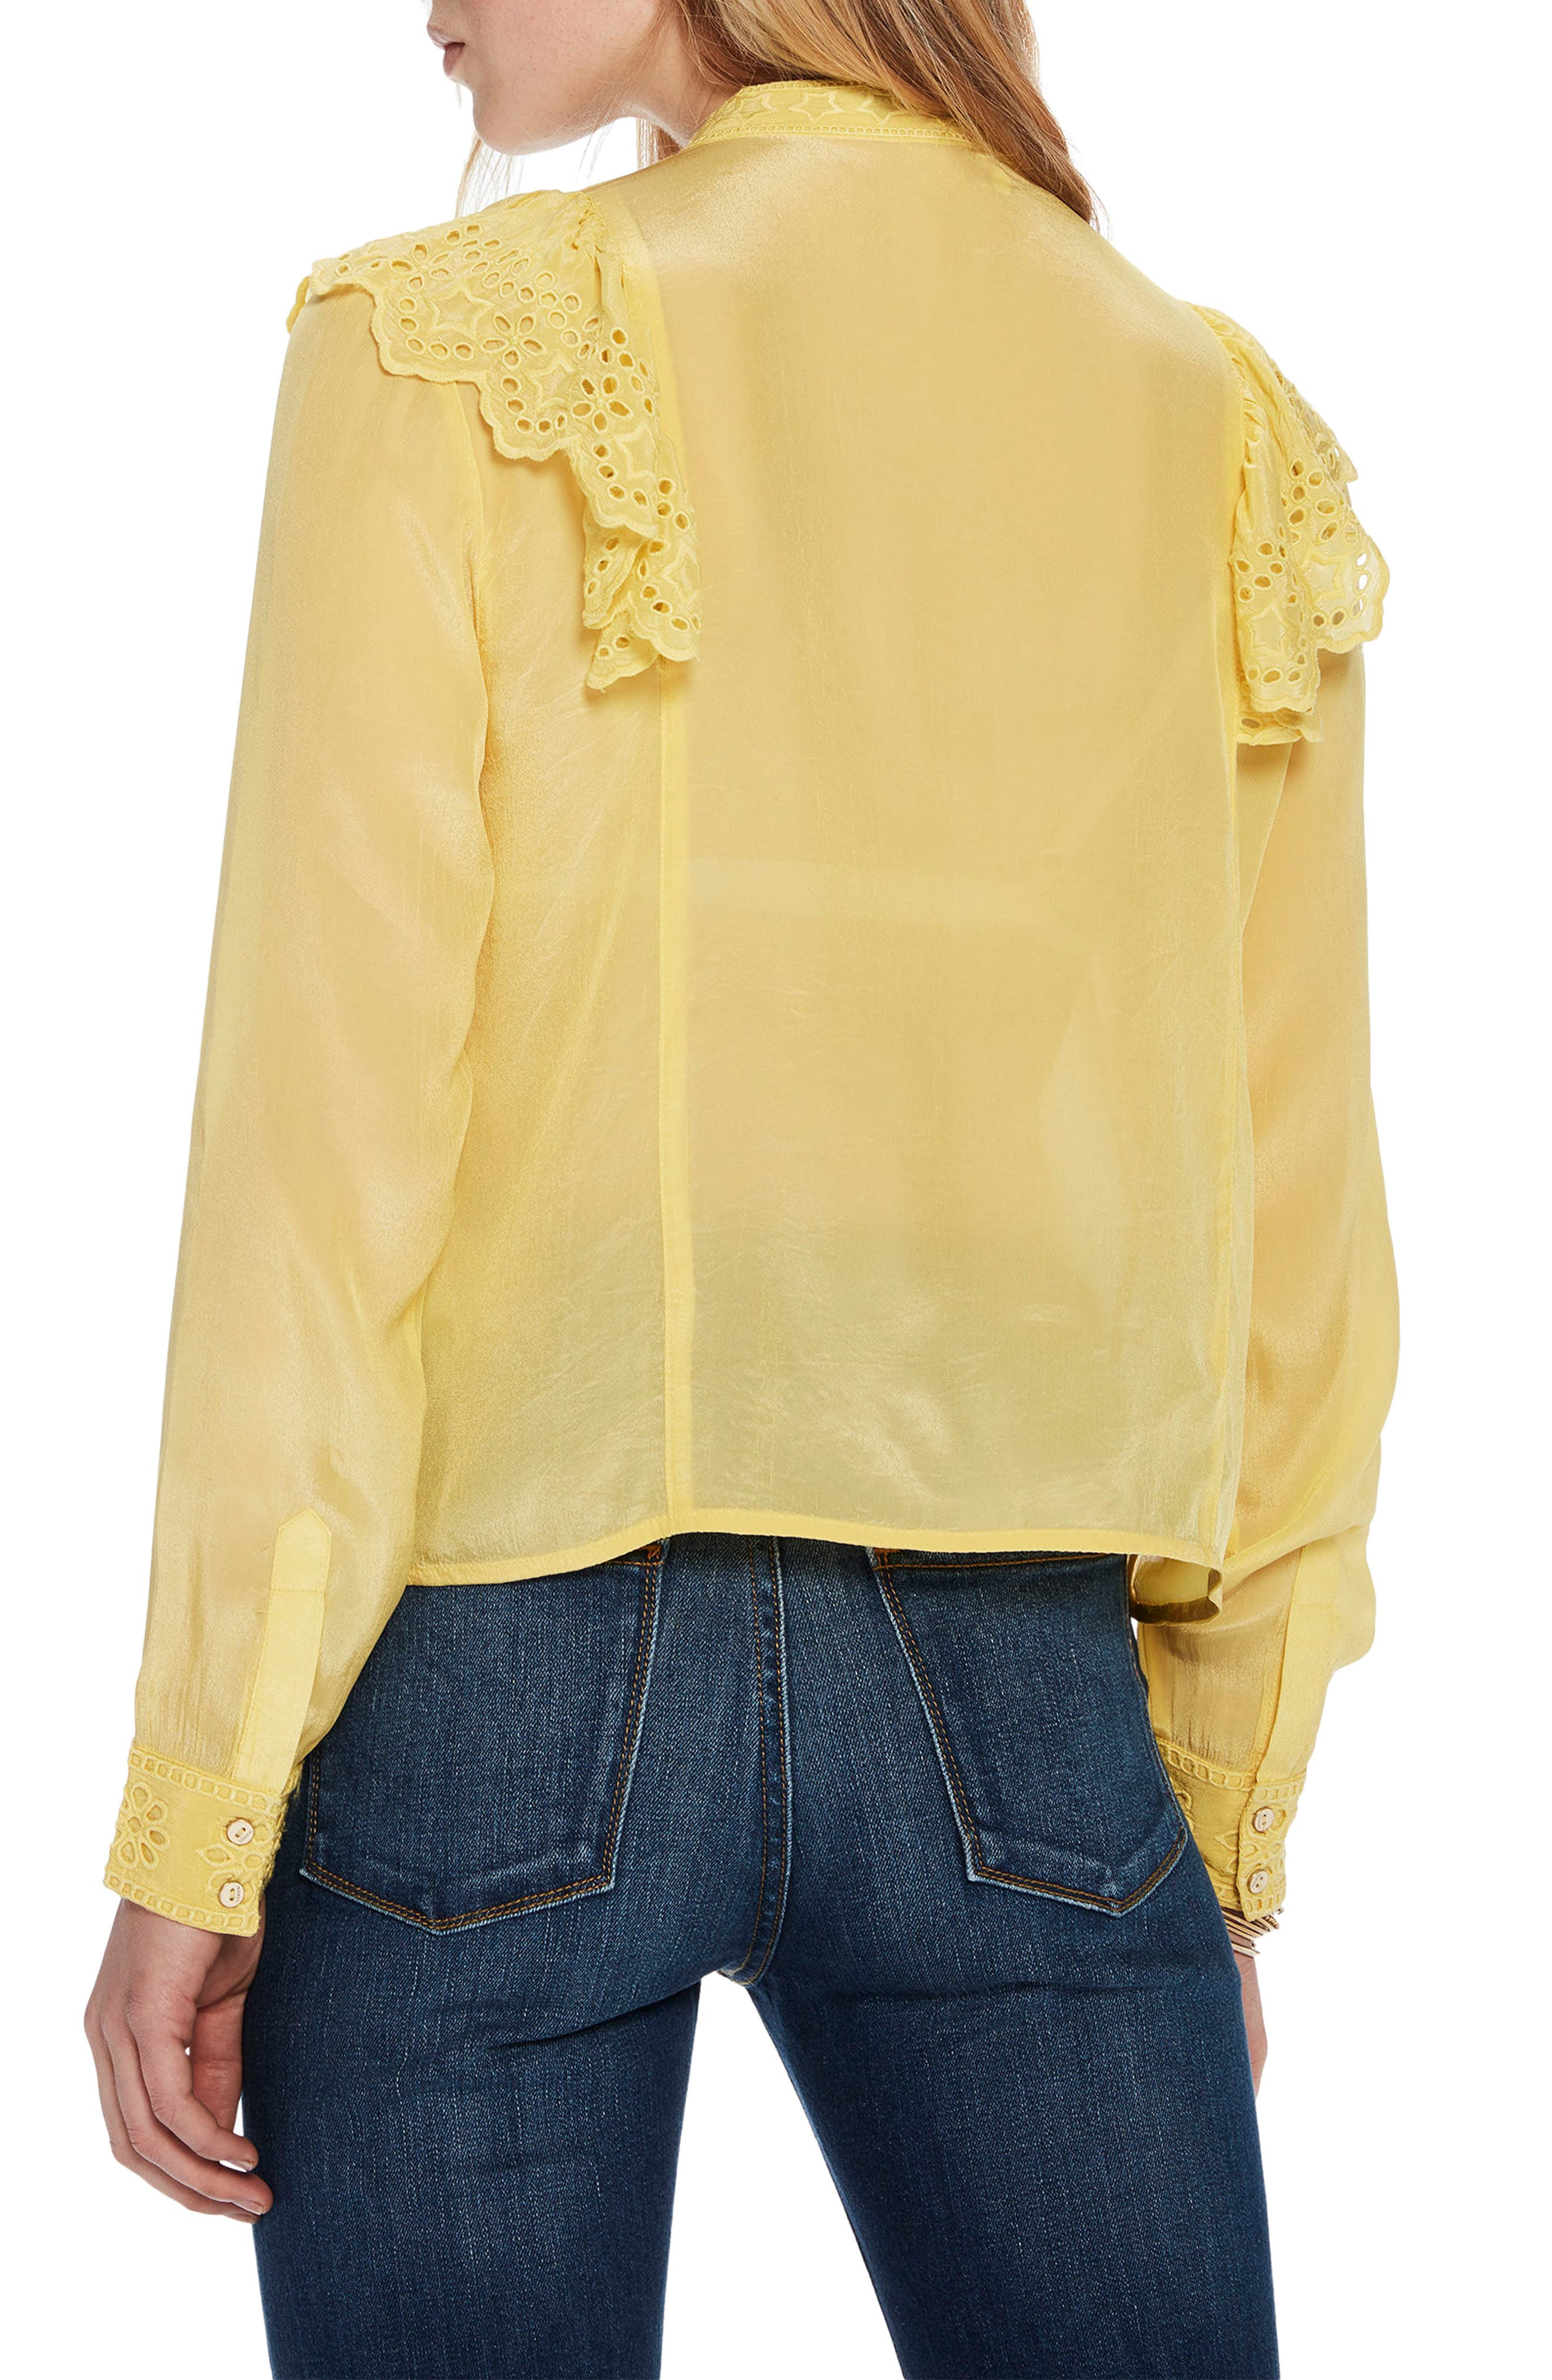 Ruffle Embroidered Eyelet Top,                             Alternate thumbnail 2, color,                             2118 Cheddar